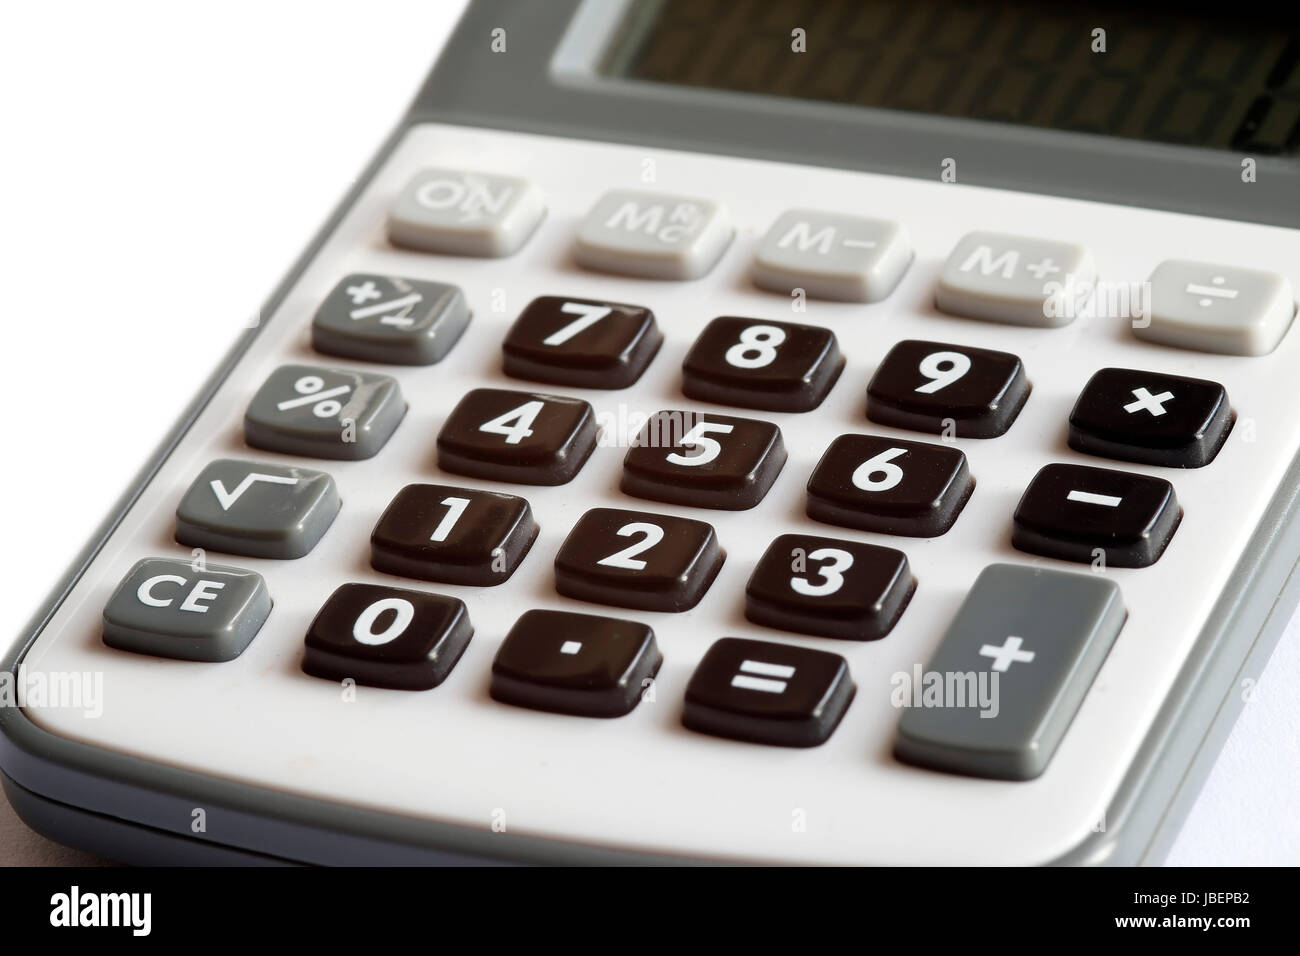 Calculator - counting of the financial position - charges and revenue - receipts and expenditure - poor prospects - Stock Image